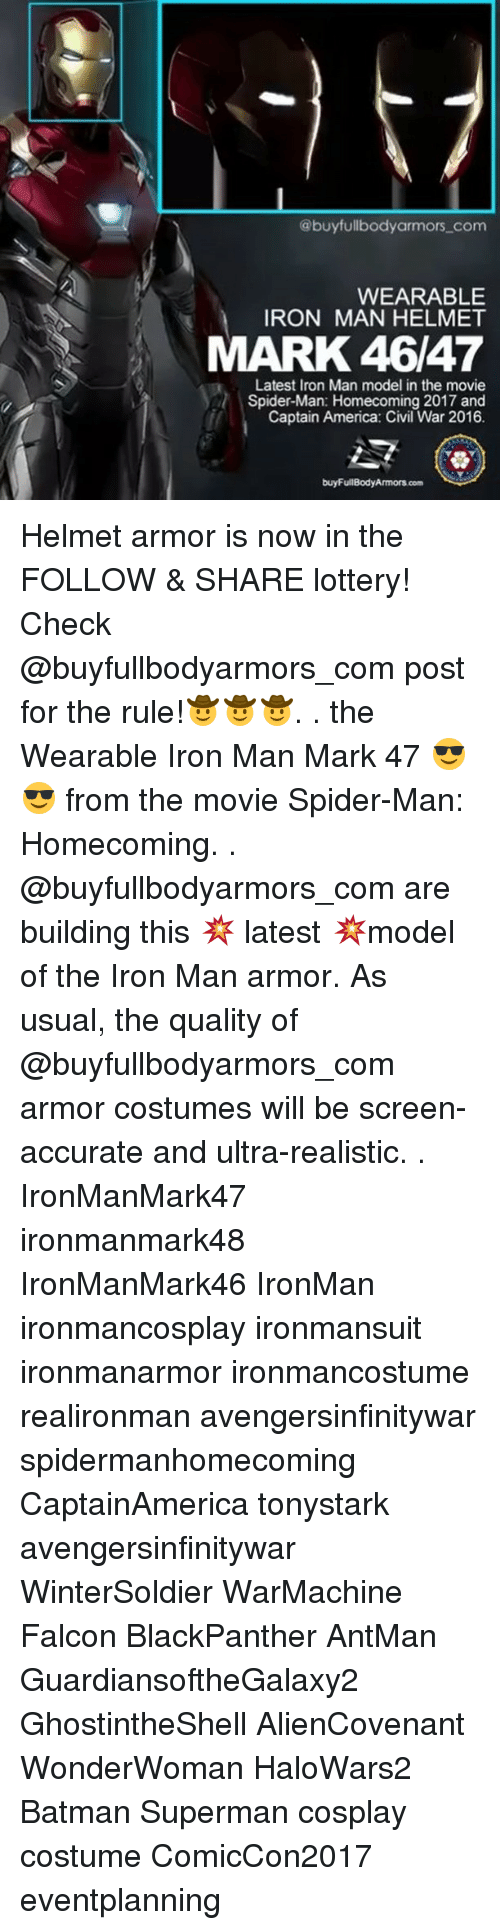 falcone: @buyfullbodyarmors com  WEARABLE  IRON MAN HELMET  MARK 46/47  Latest Iron Man model in the movie  Spider-Man: Homecoming 2017 and  Captain America: Civil War 2016. Helmet armor is now in the FOLLOW & SHARE lottery! Check @buyfullbodyarmors_com post for the rule!🤠🤠🤠. . the Wearable Iron Man Mark 47 😎😎 from the movie Spider-Man: Homecoming. . @buyfullbodyarmors_com are building this 💥 latest 💥model of the Iron Man armor. As usual, the quality of @buyfullbodyarmors_com armor costumes will be screen-accurate and ultra-realistic. . IronManMark47 ironmanmark48 IronManMark46 IronMan ironmancosplay ironmansuit ironmanarmor ironmancostume realironman avengersinfinitywar spidermanhomecoming CaptainAmerica tonystark avengersinfinitywar WinterSoldier WarMachine Falcon BlackPanther AntMan GuardiansoftheGalaxy2 GhostintheShell AlienCovenant WonderWoman HaloWars2 Batman Superman cosplay costume ComicCon2017 eventplanning